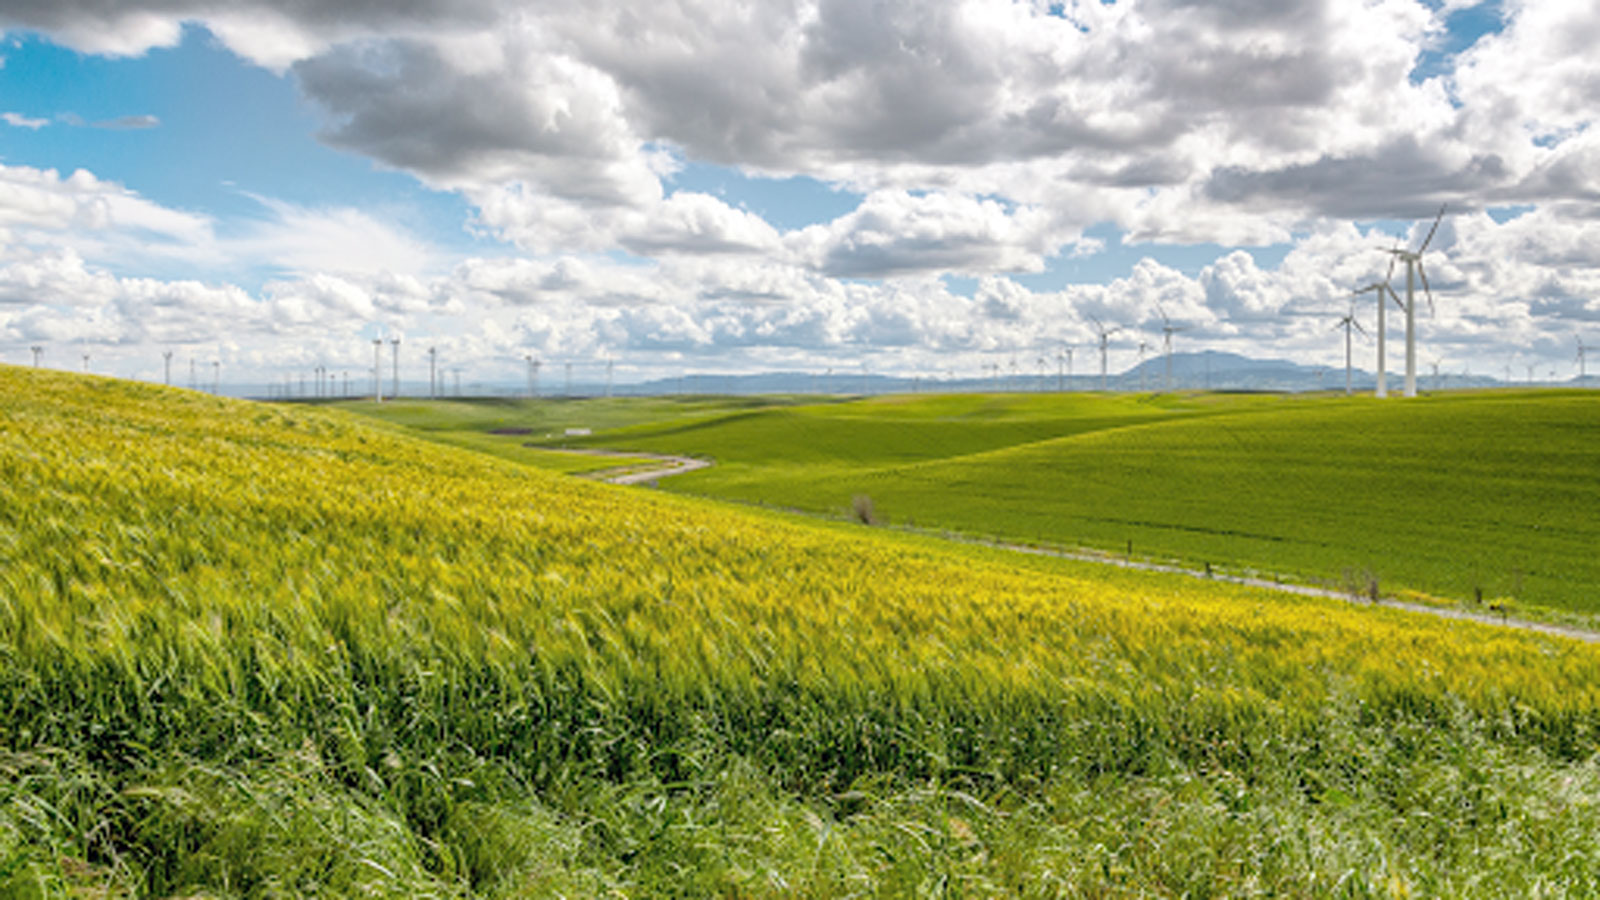 """<h4>CLEAN ENERGY & GLOBAL WARMING</h4><h5>We're calling for the expansion and extension of clean energy tax credits.</h5><div><a style=""""padding: 8px 15px 10px 10px; font-family: 'open_sansbold' !important; color: #fff; border: none; border-radius: 5px; background-color: #FF0000;"""" href=""""https://environmentamerica.webaction.org/p/dia/action4/common/public/?action_KEY=42202"""">TAKE ACTION</a></div><em>WestBoundary Photography Chris Gill</em>"""